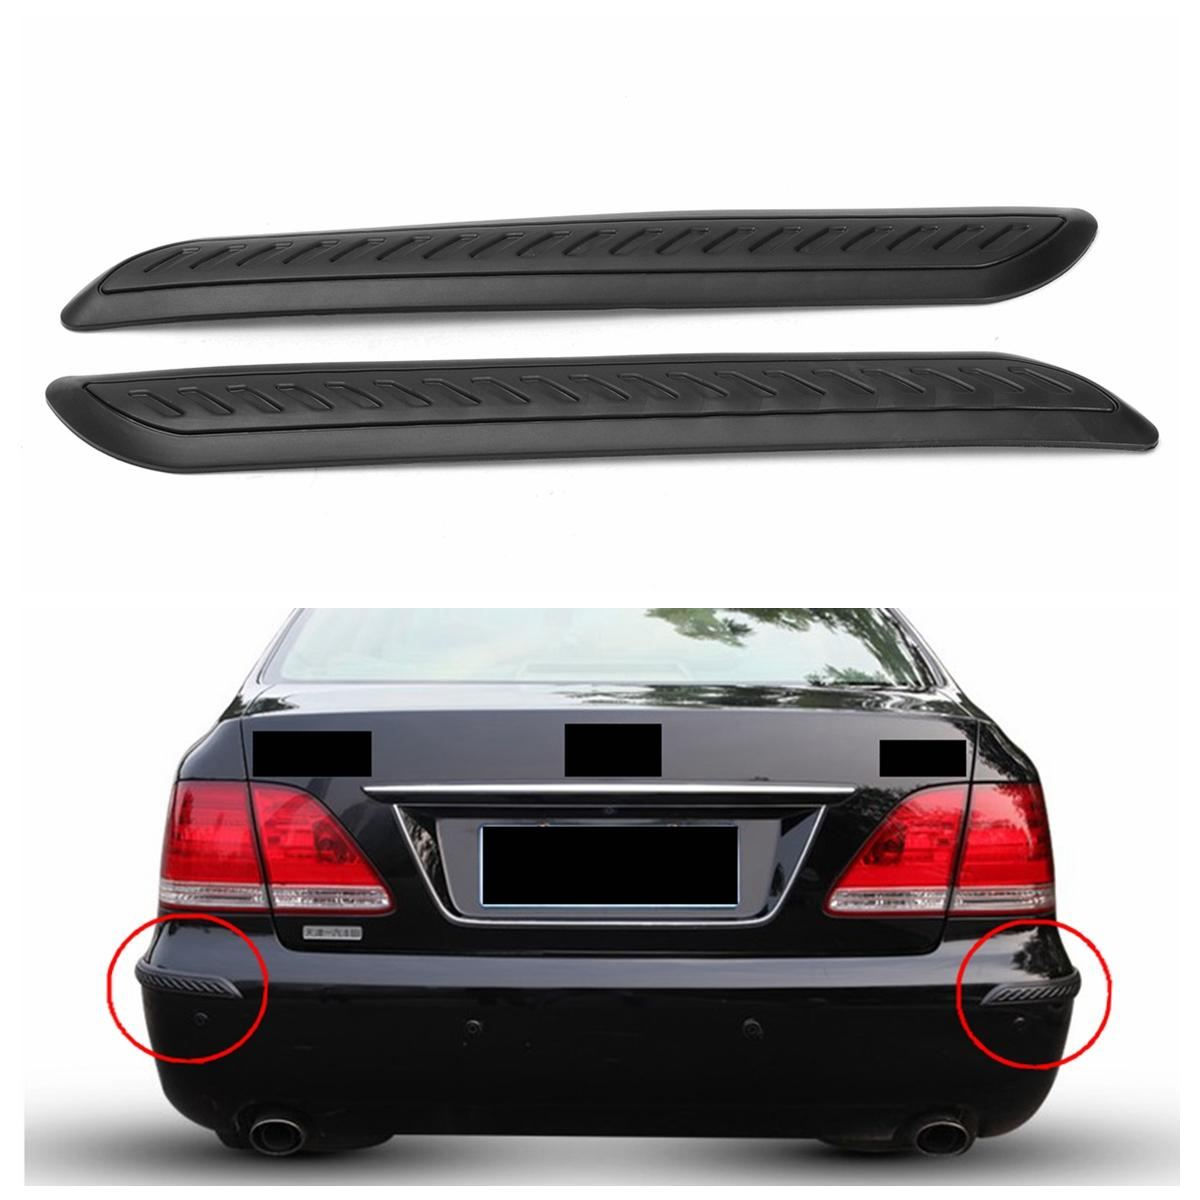 Car Bumper Corner Protector Accessories Door Guard Cover Lip Crash Bar Trim 2pc